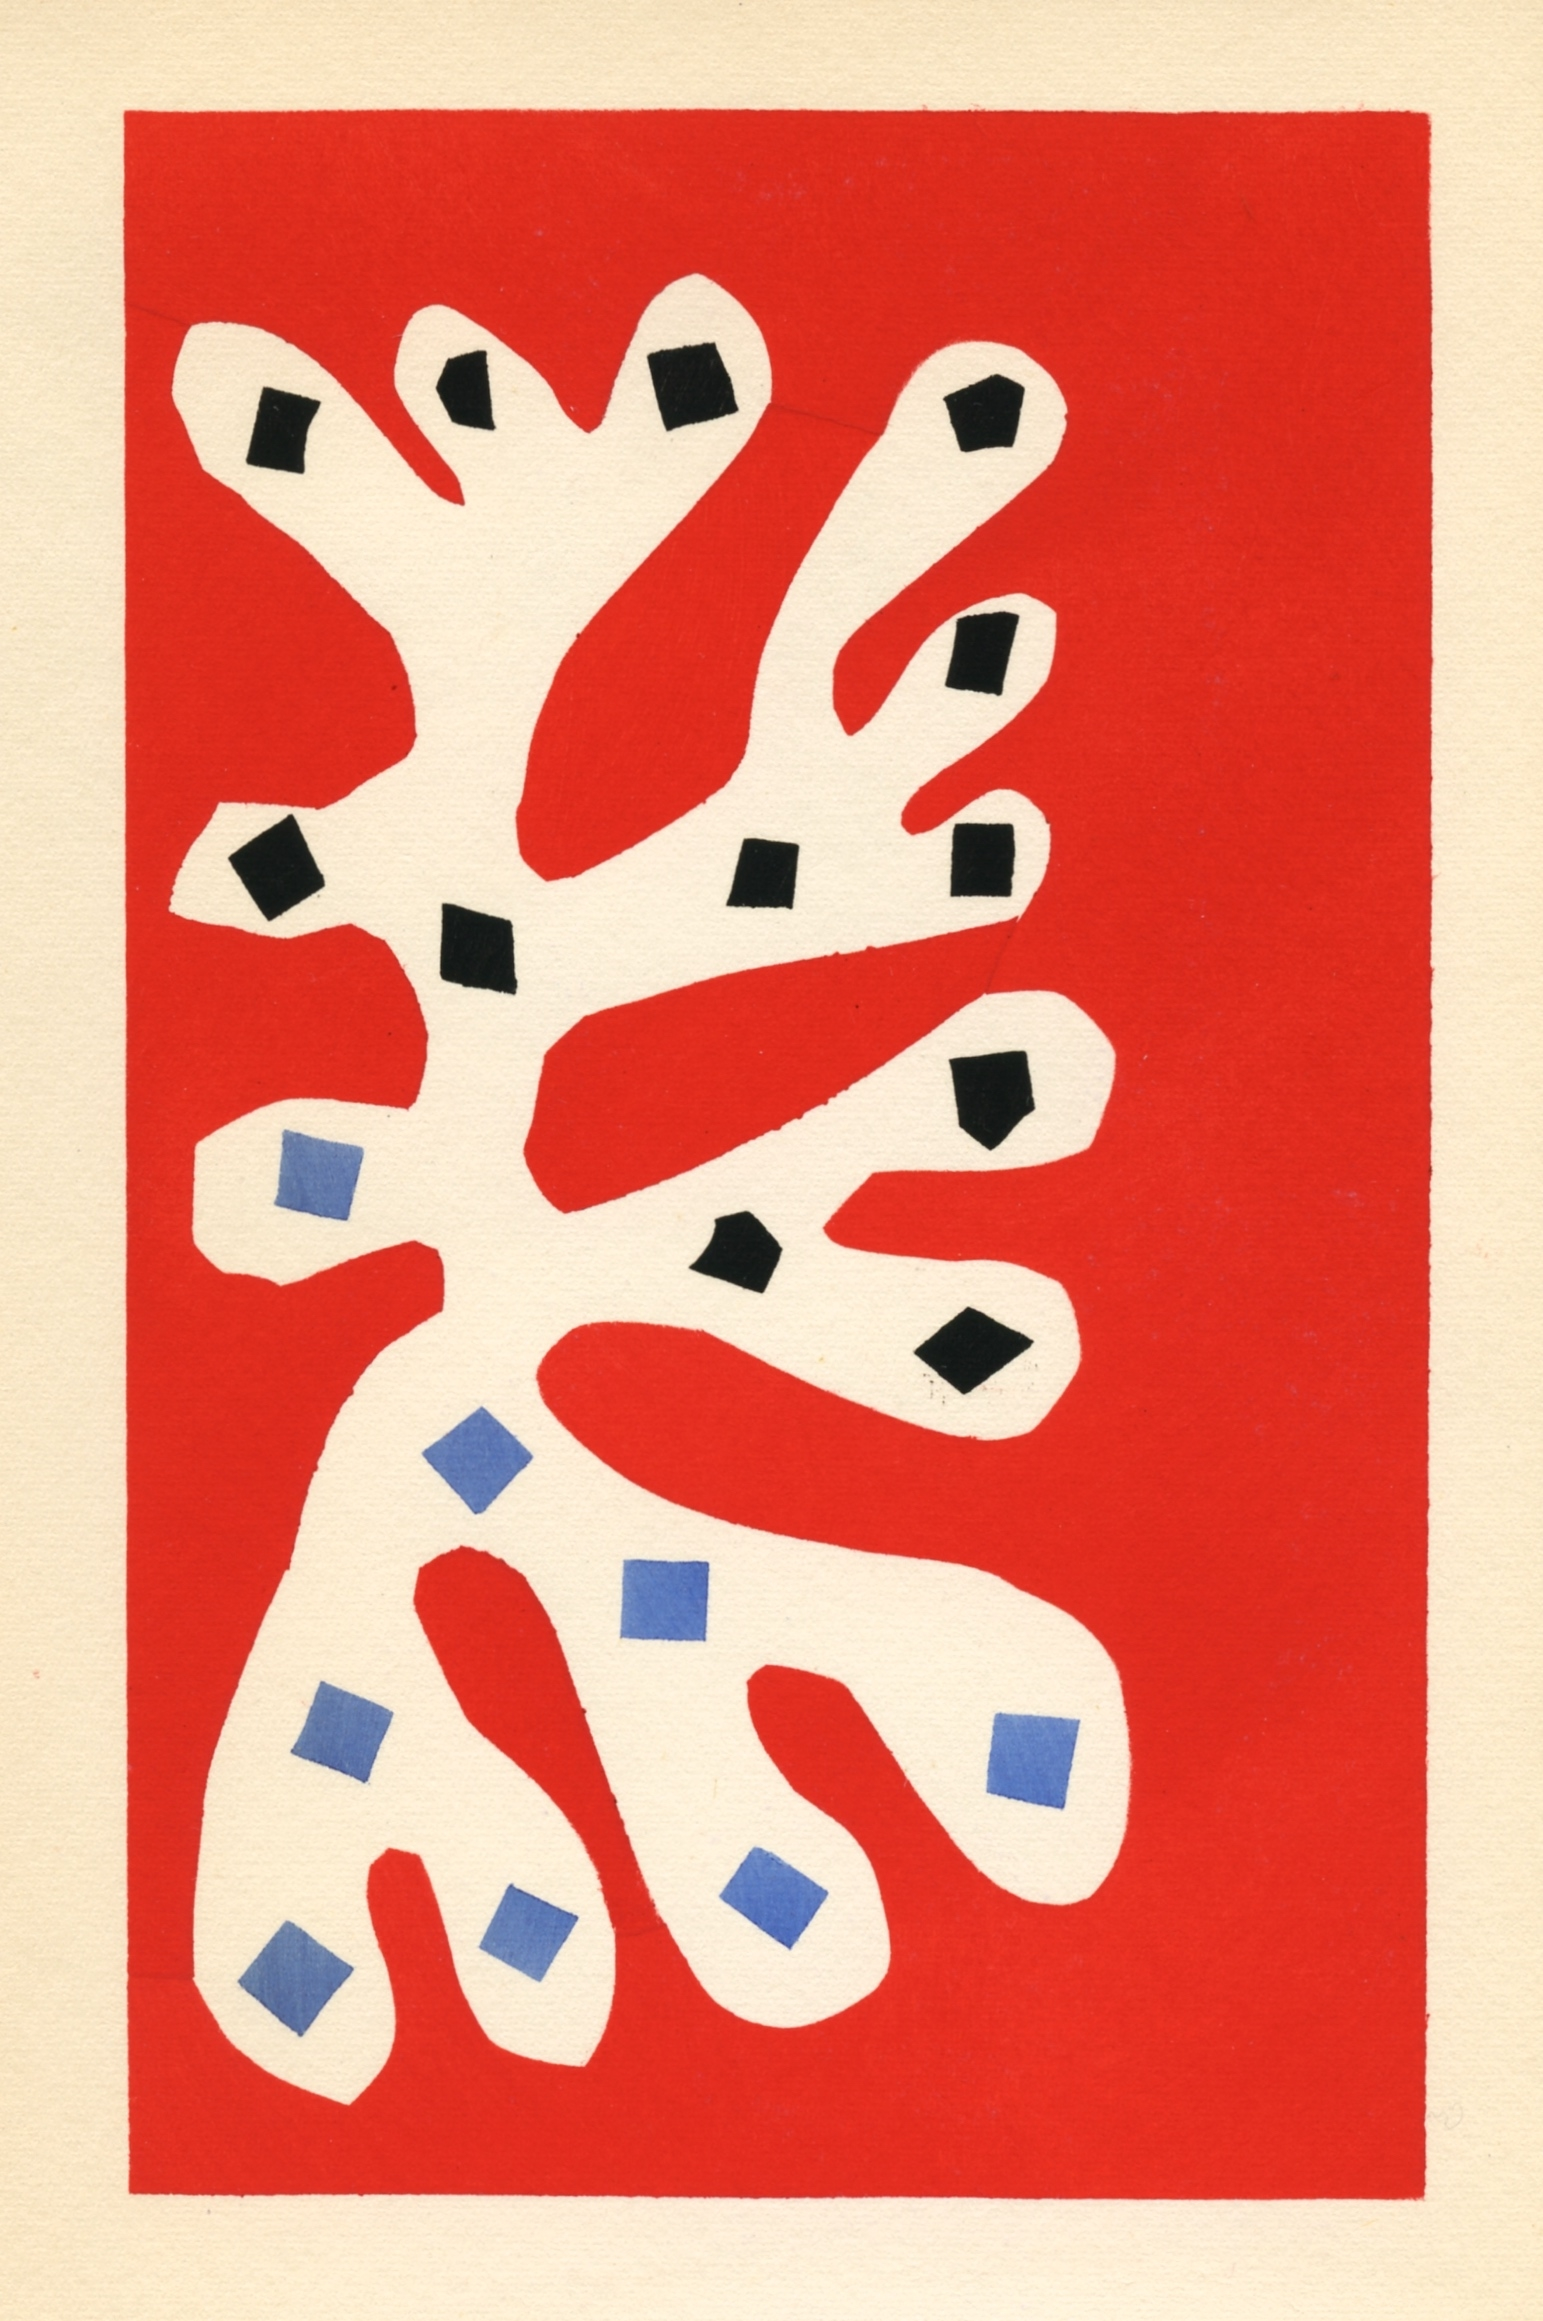 Henri matisse pochoir algue blanche sur fond rouge for Pochoir prints for sale